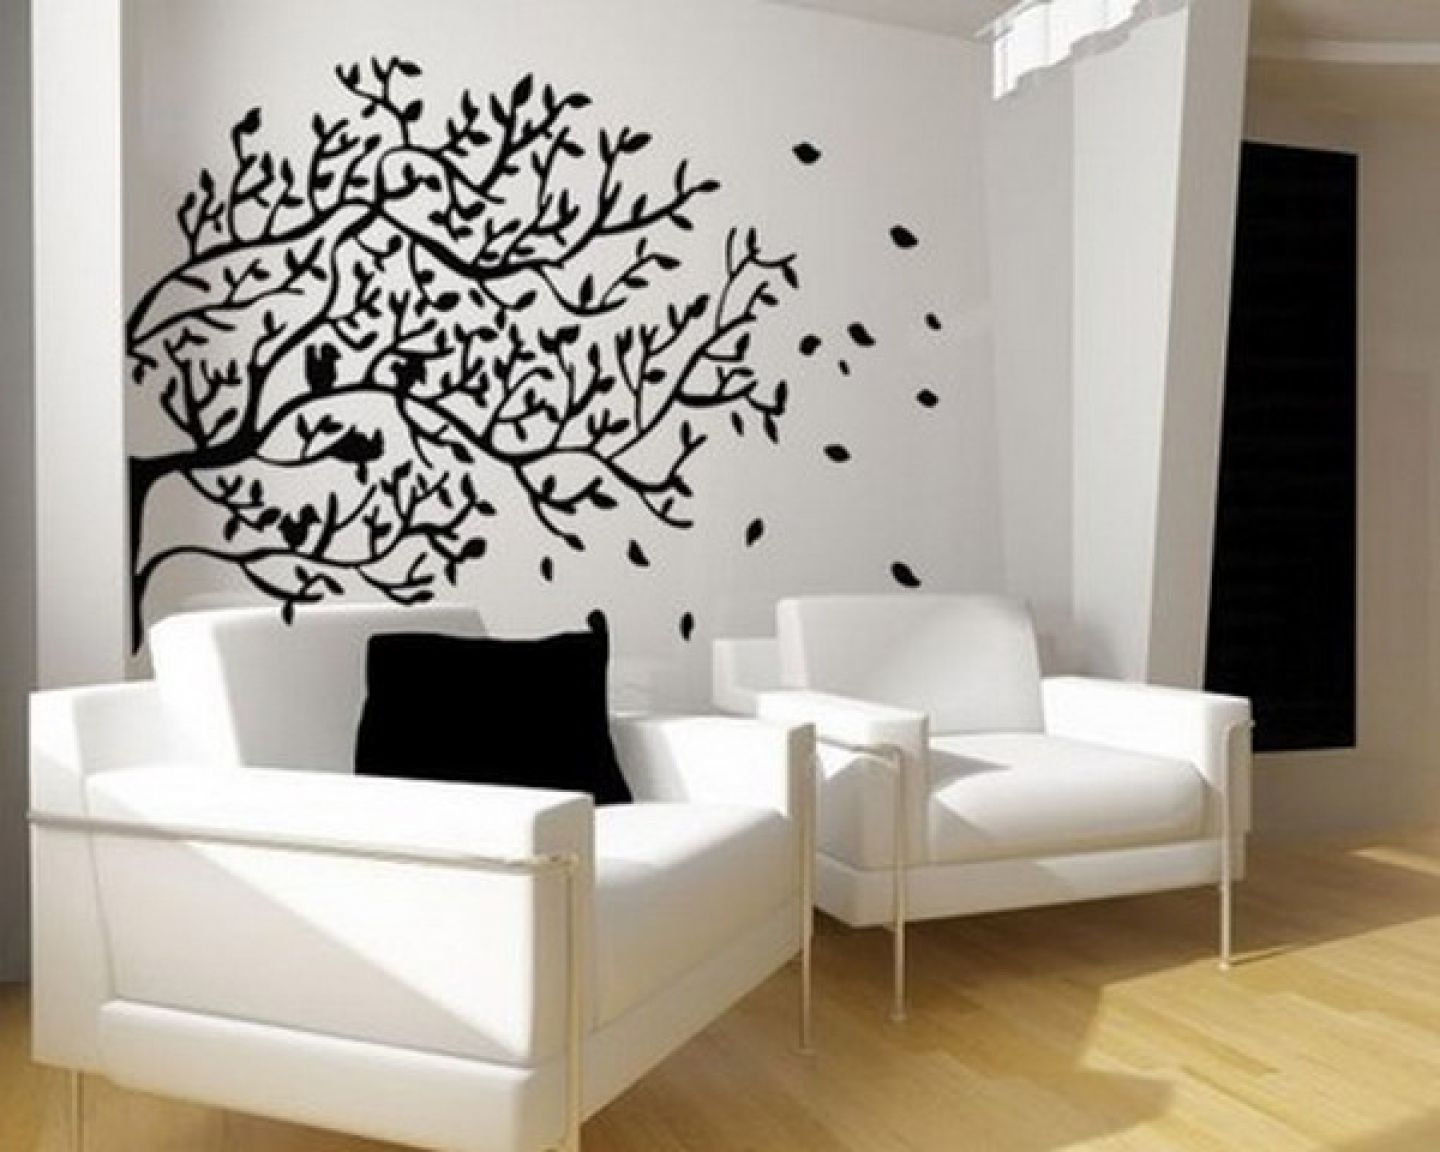 Wall Designs Stickers luxury living room tree wall murals sticker decorations image